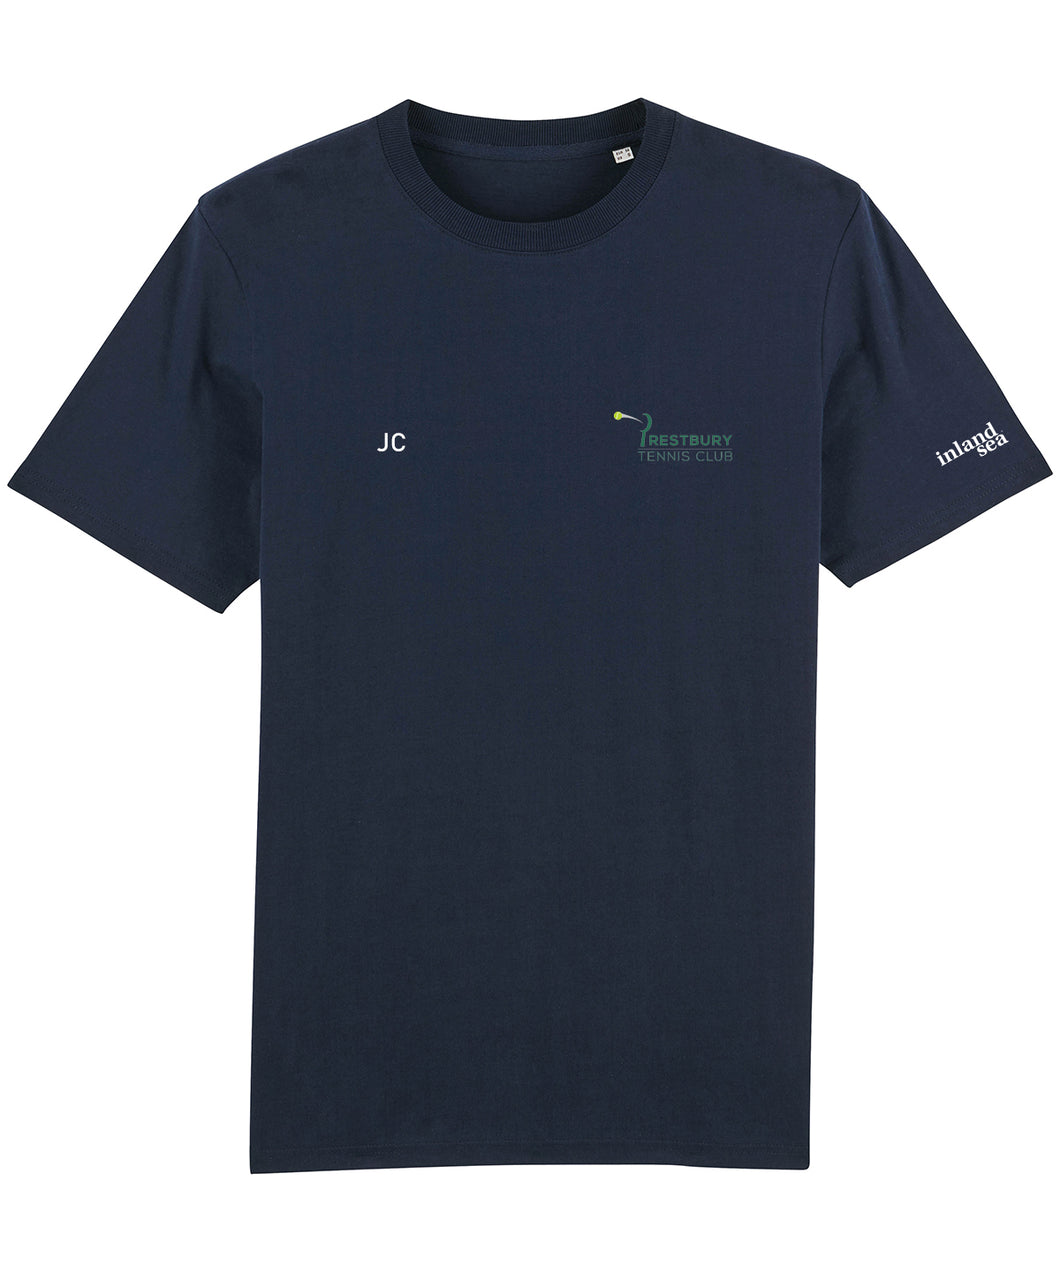 Prestbury Tennis Club Navy T-shirt with initials